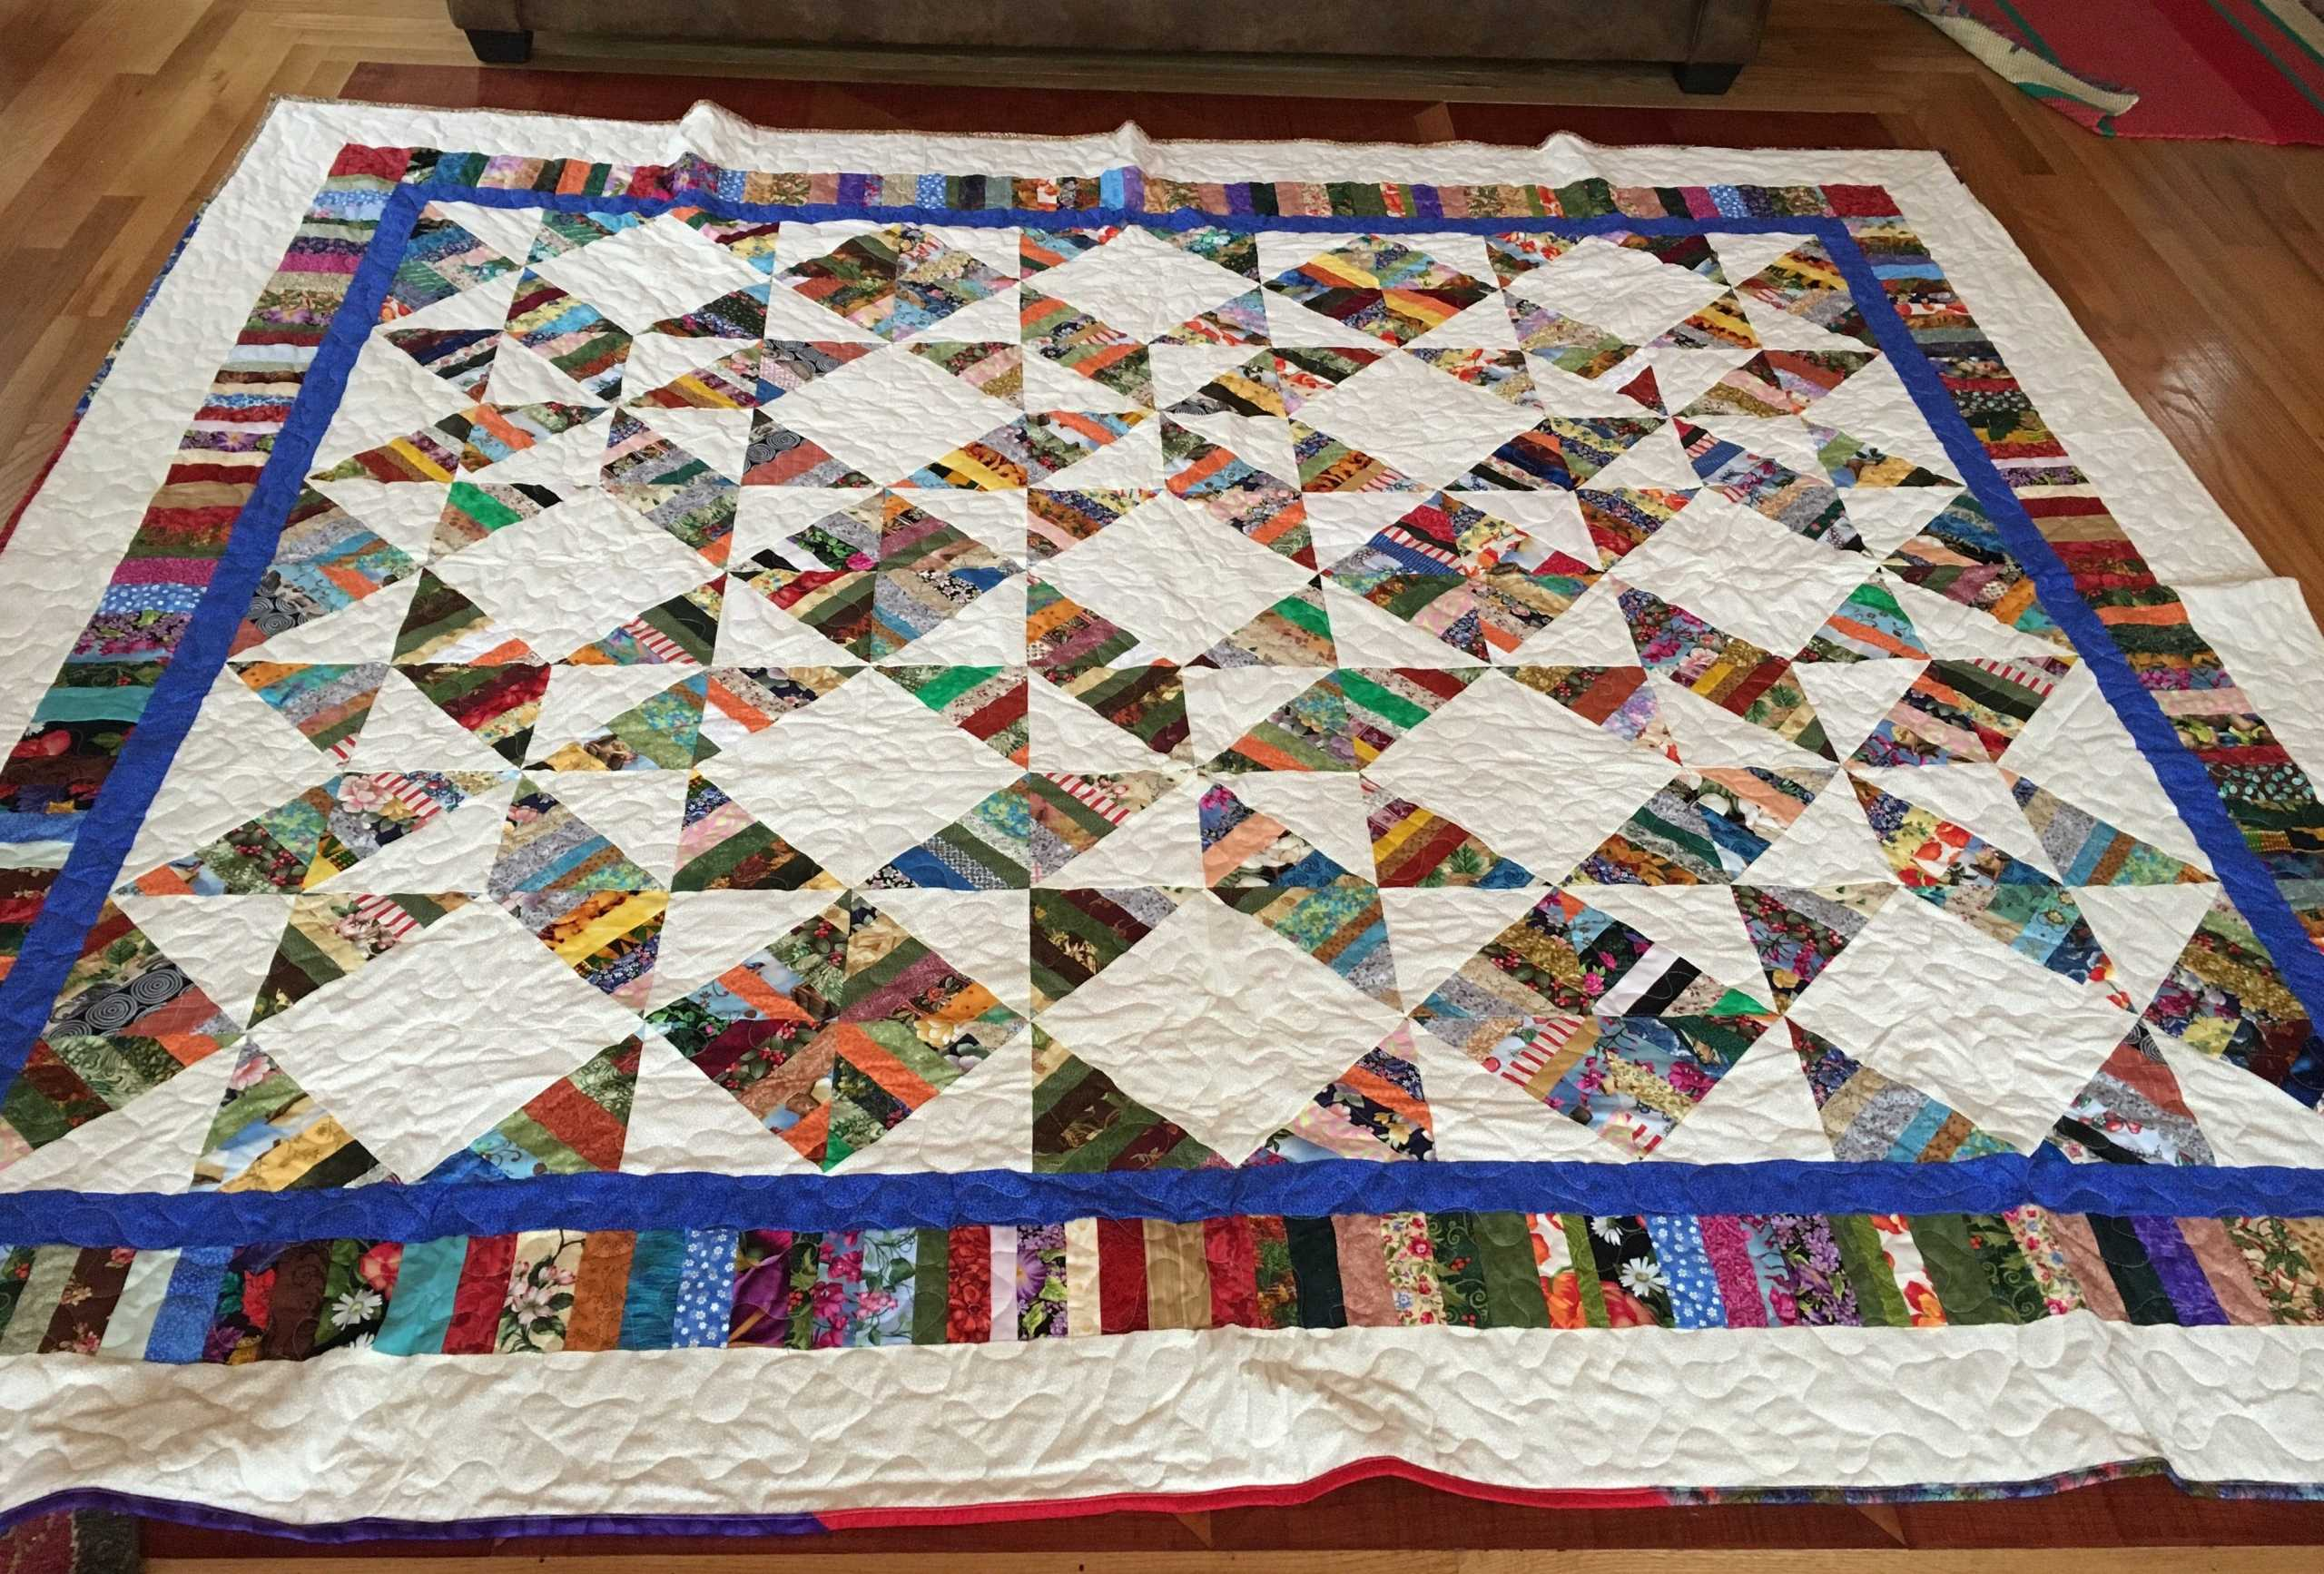 QUEEN SIZE QUILT  Donated by: SUNSHINE QUILTERS OF LAFARGEVILLE  Valued at: $500